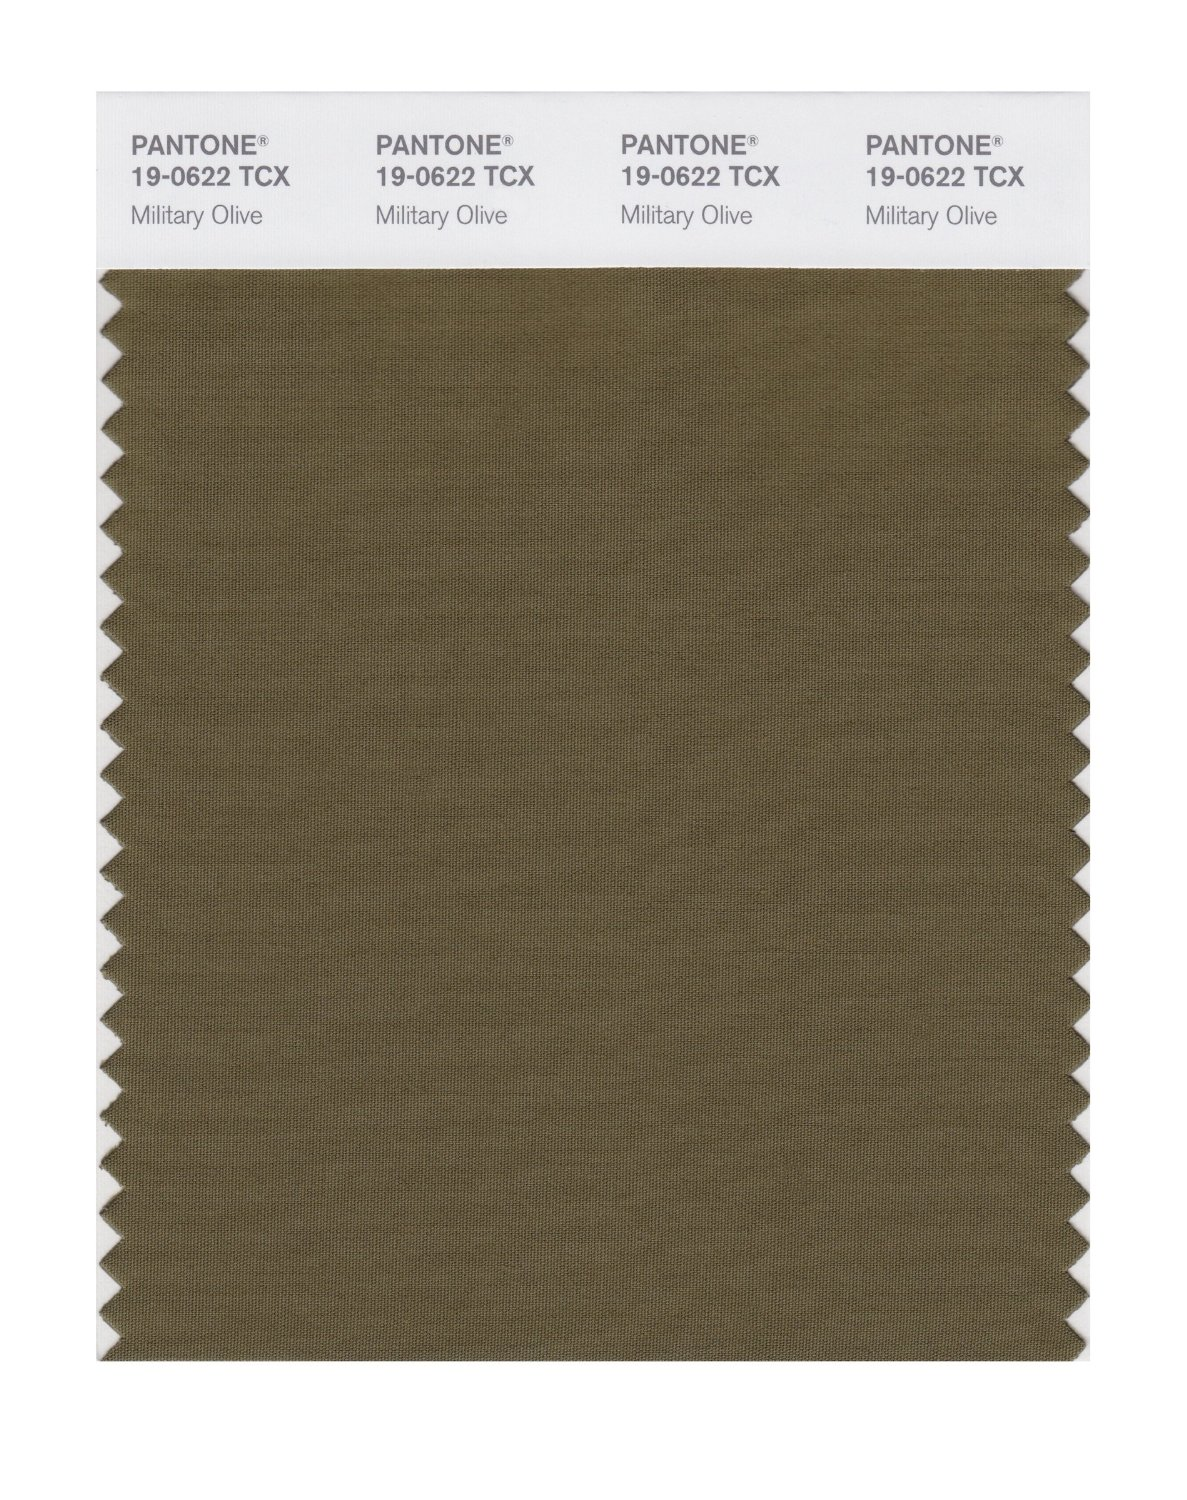 Pantone Smart Swatch 19-0622 Military Olive